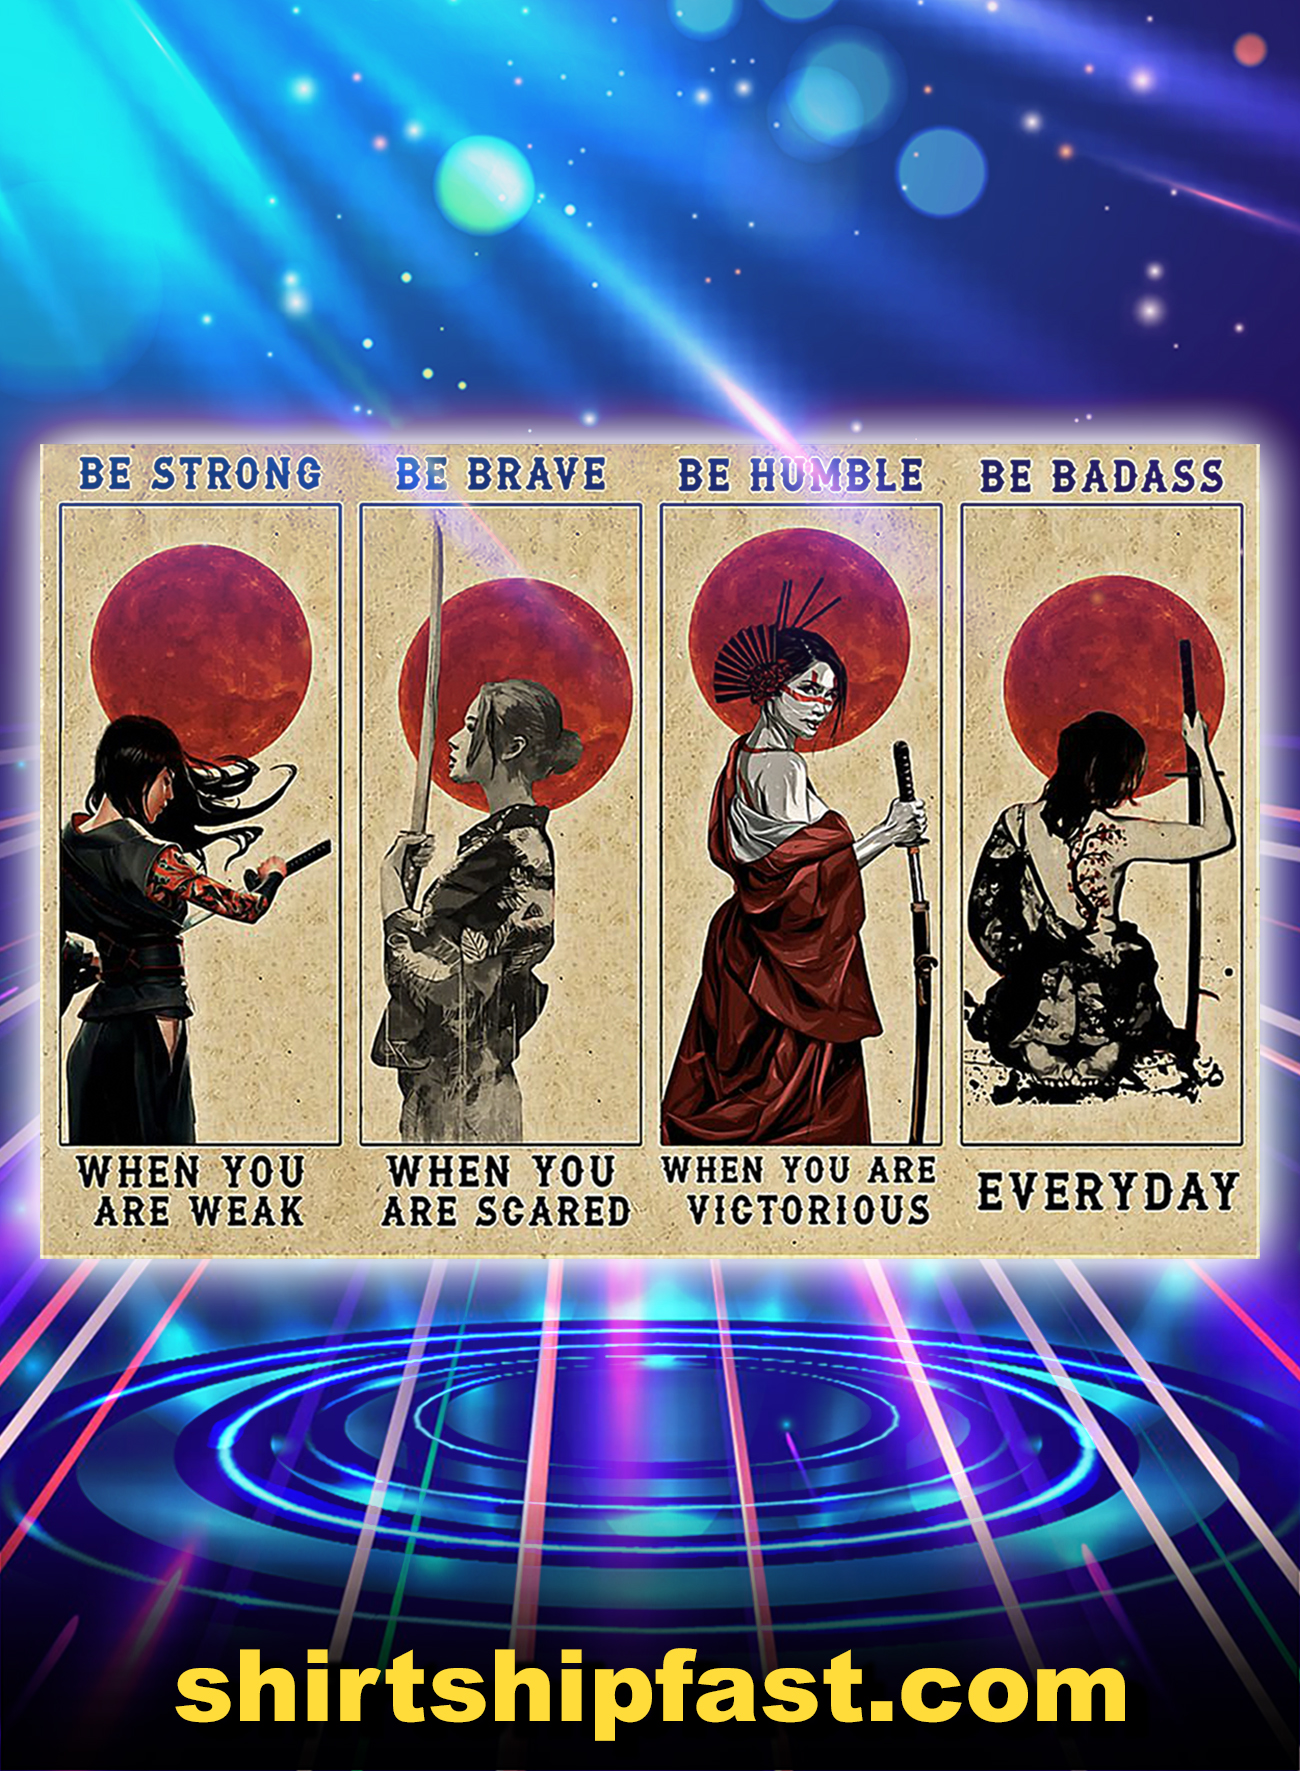 Samurai women be strong be brave be humble be badass poster - A1